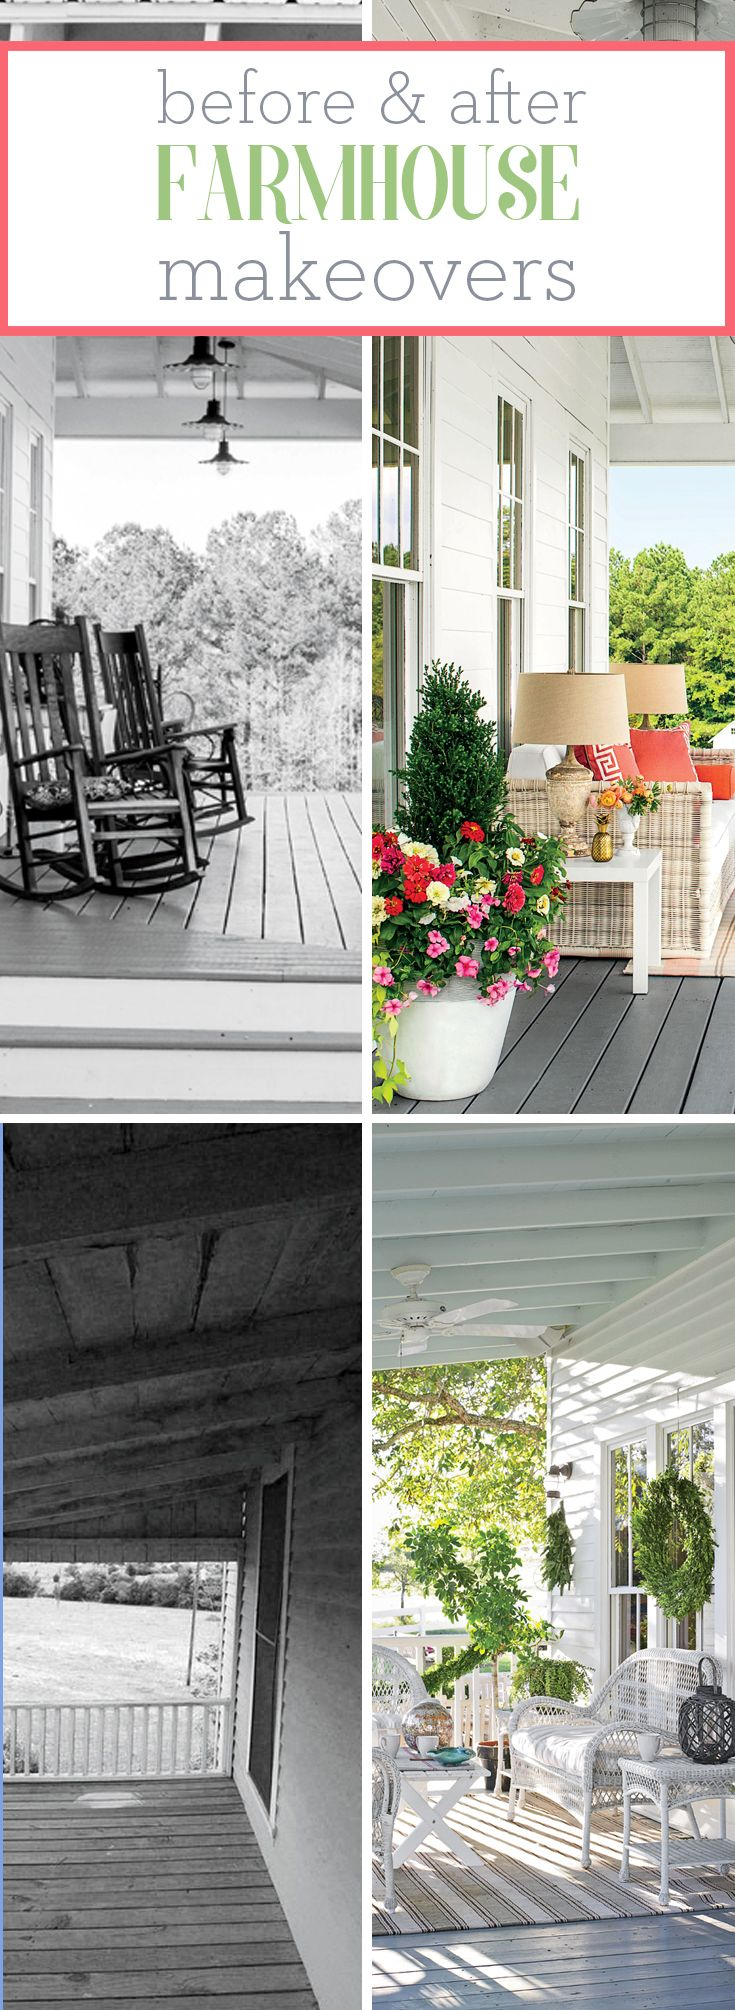 Idea 3 charm with new finishes before amp after family beach homes - Stunning Farmhouse Before And After Makeovers